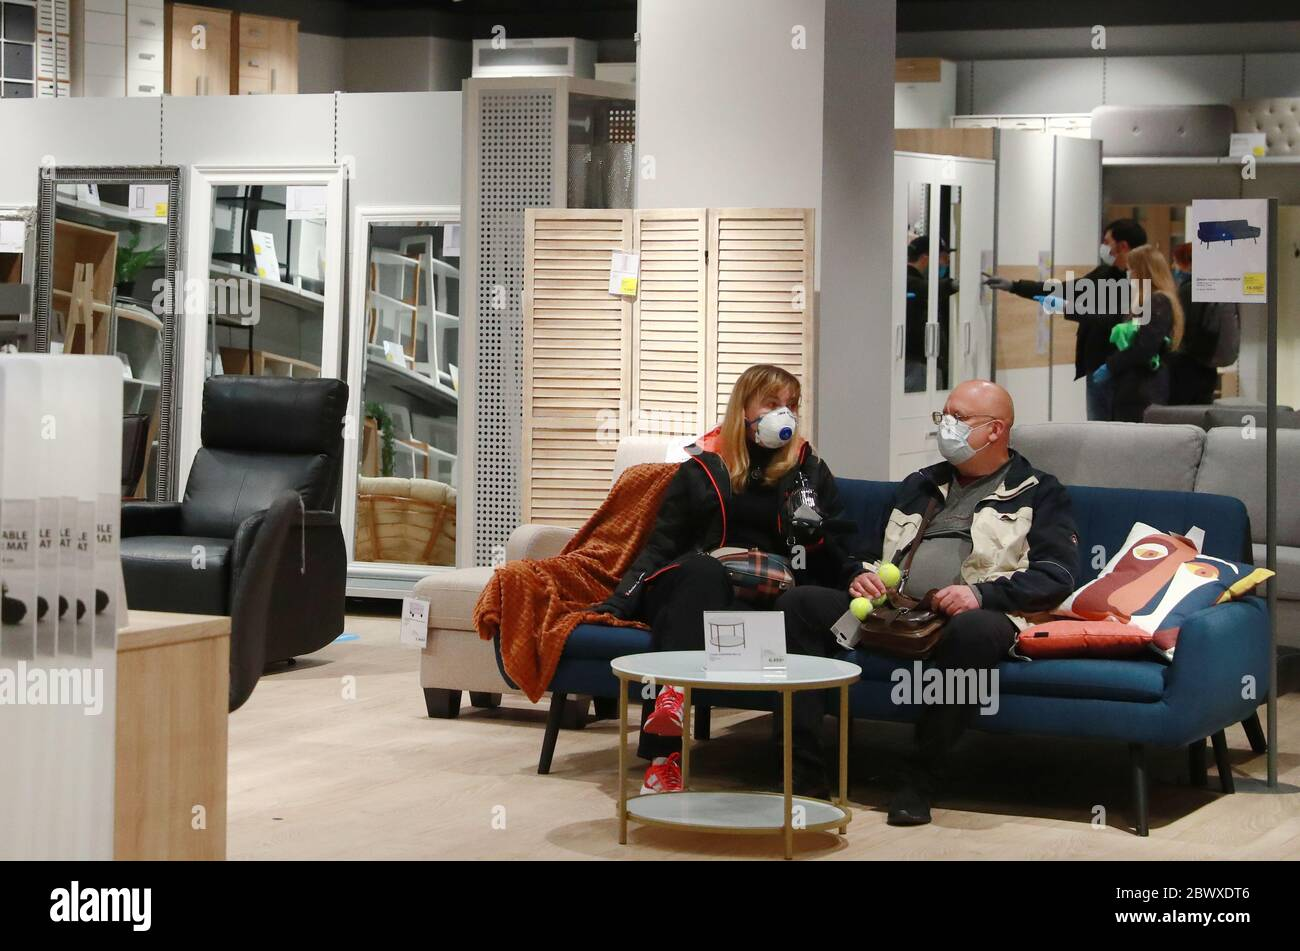 Moscow Russia 3rd June 2020 Customers Visit The First Household Goods Store Launched By The Danish Retail Chain Jysk At The Troika Shopping Centre Credit Sergei Fadeichev Tass Alamy Live News Stock Photo,Easy Gel Nail Designs Step By Step